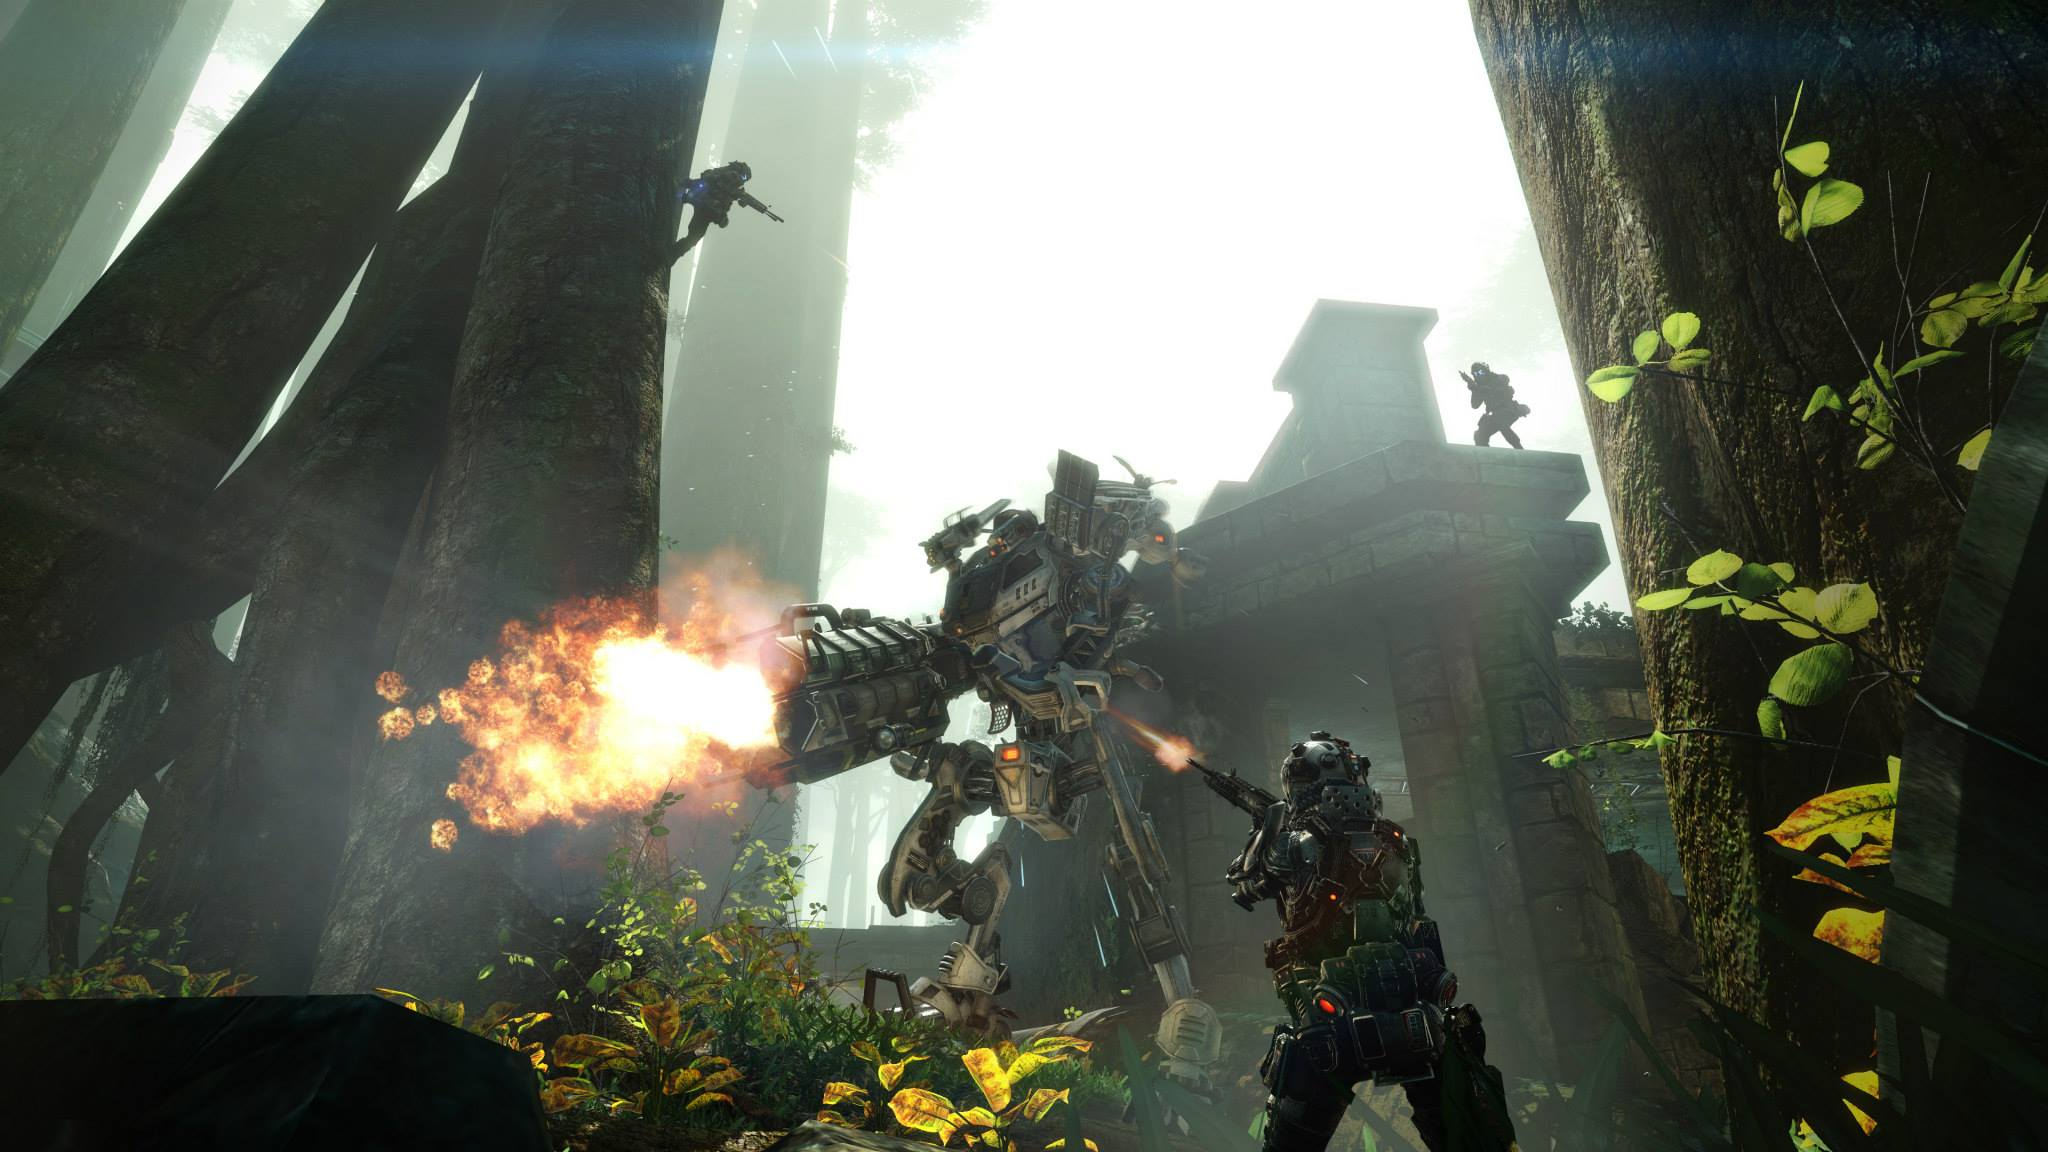 Check out these screenshots of the upcoming Titanfall DLC